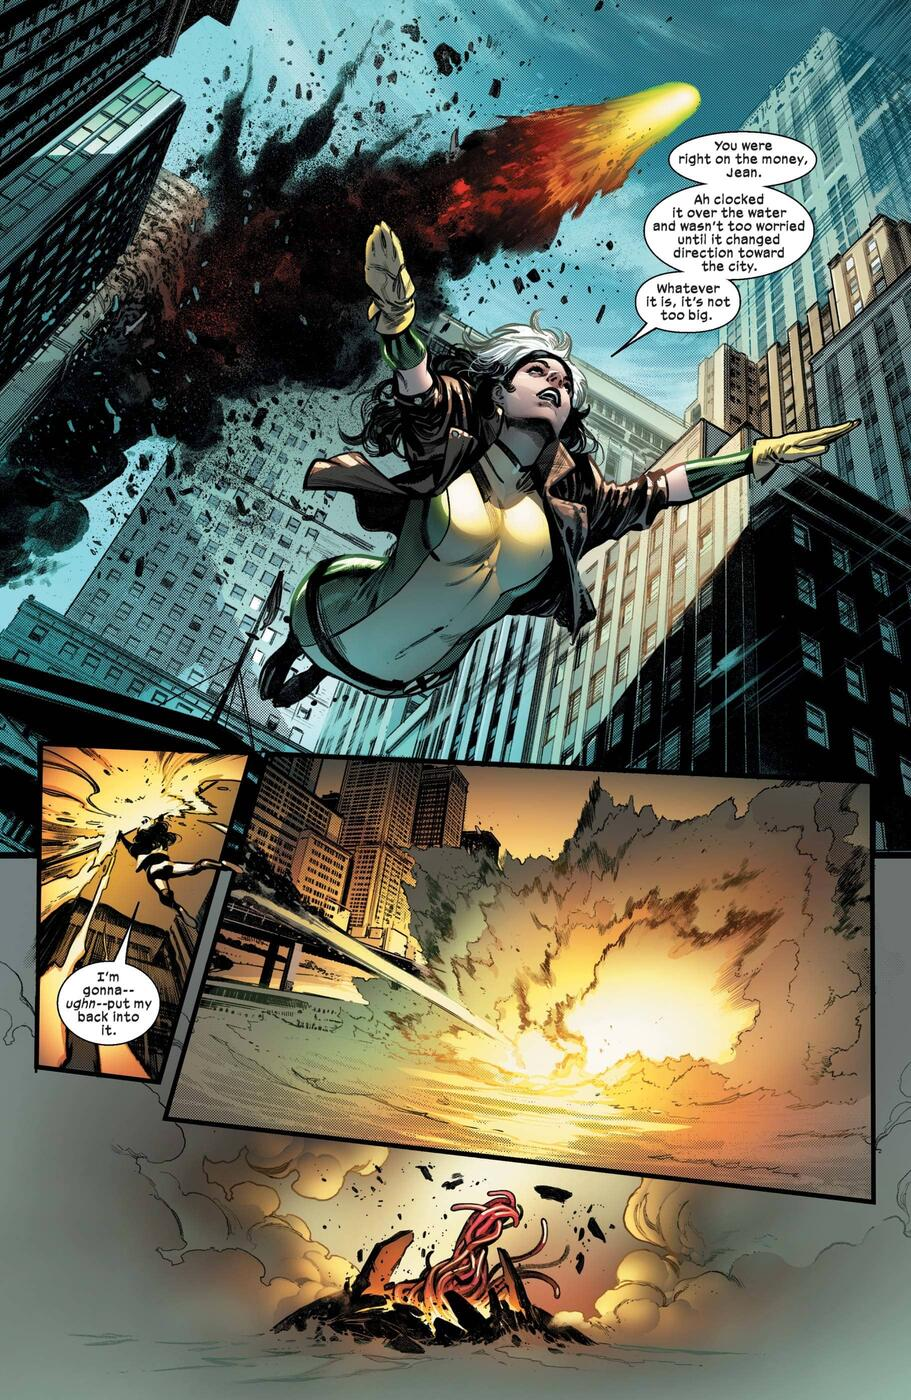 Preview page from X-MEN (2021) #1.